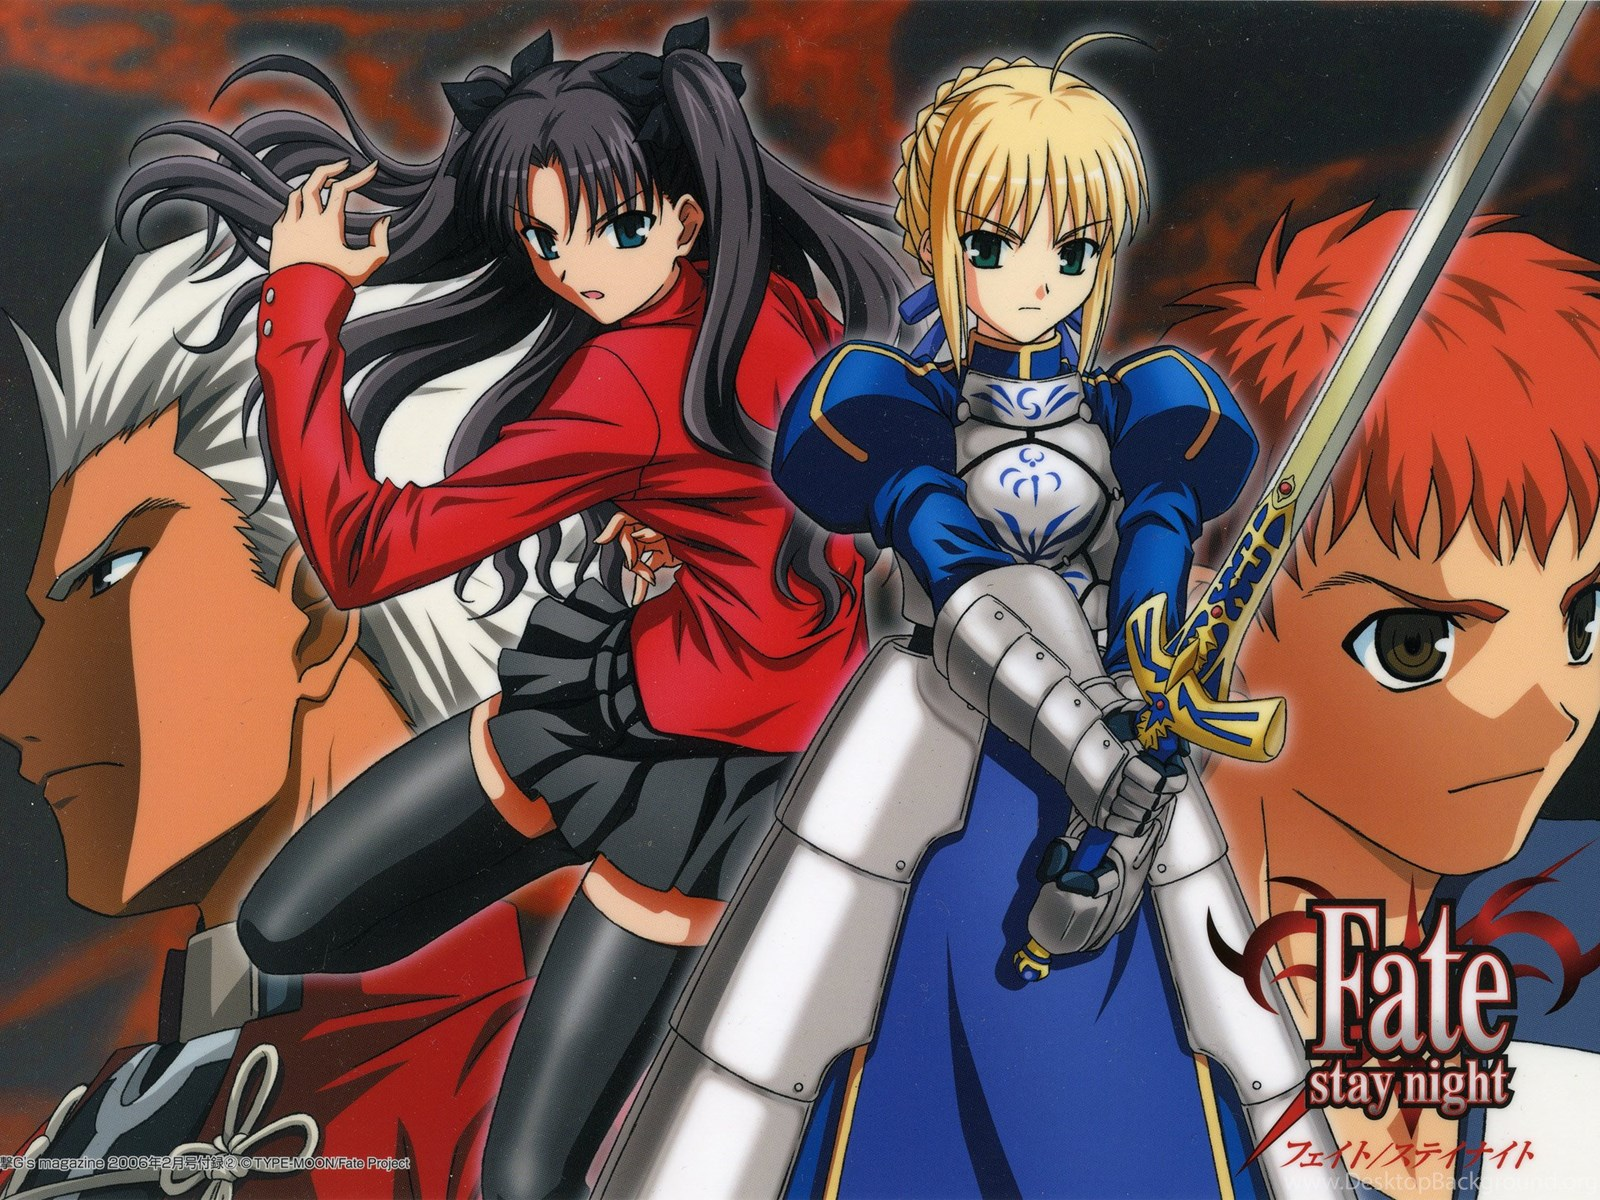 782 Fate Stay Night Hd Wallpapers Desktop Background